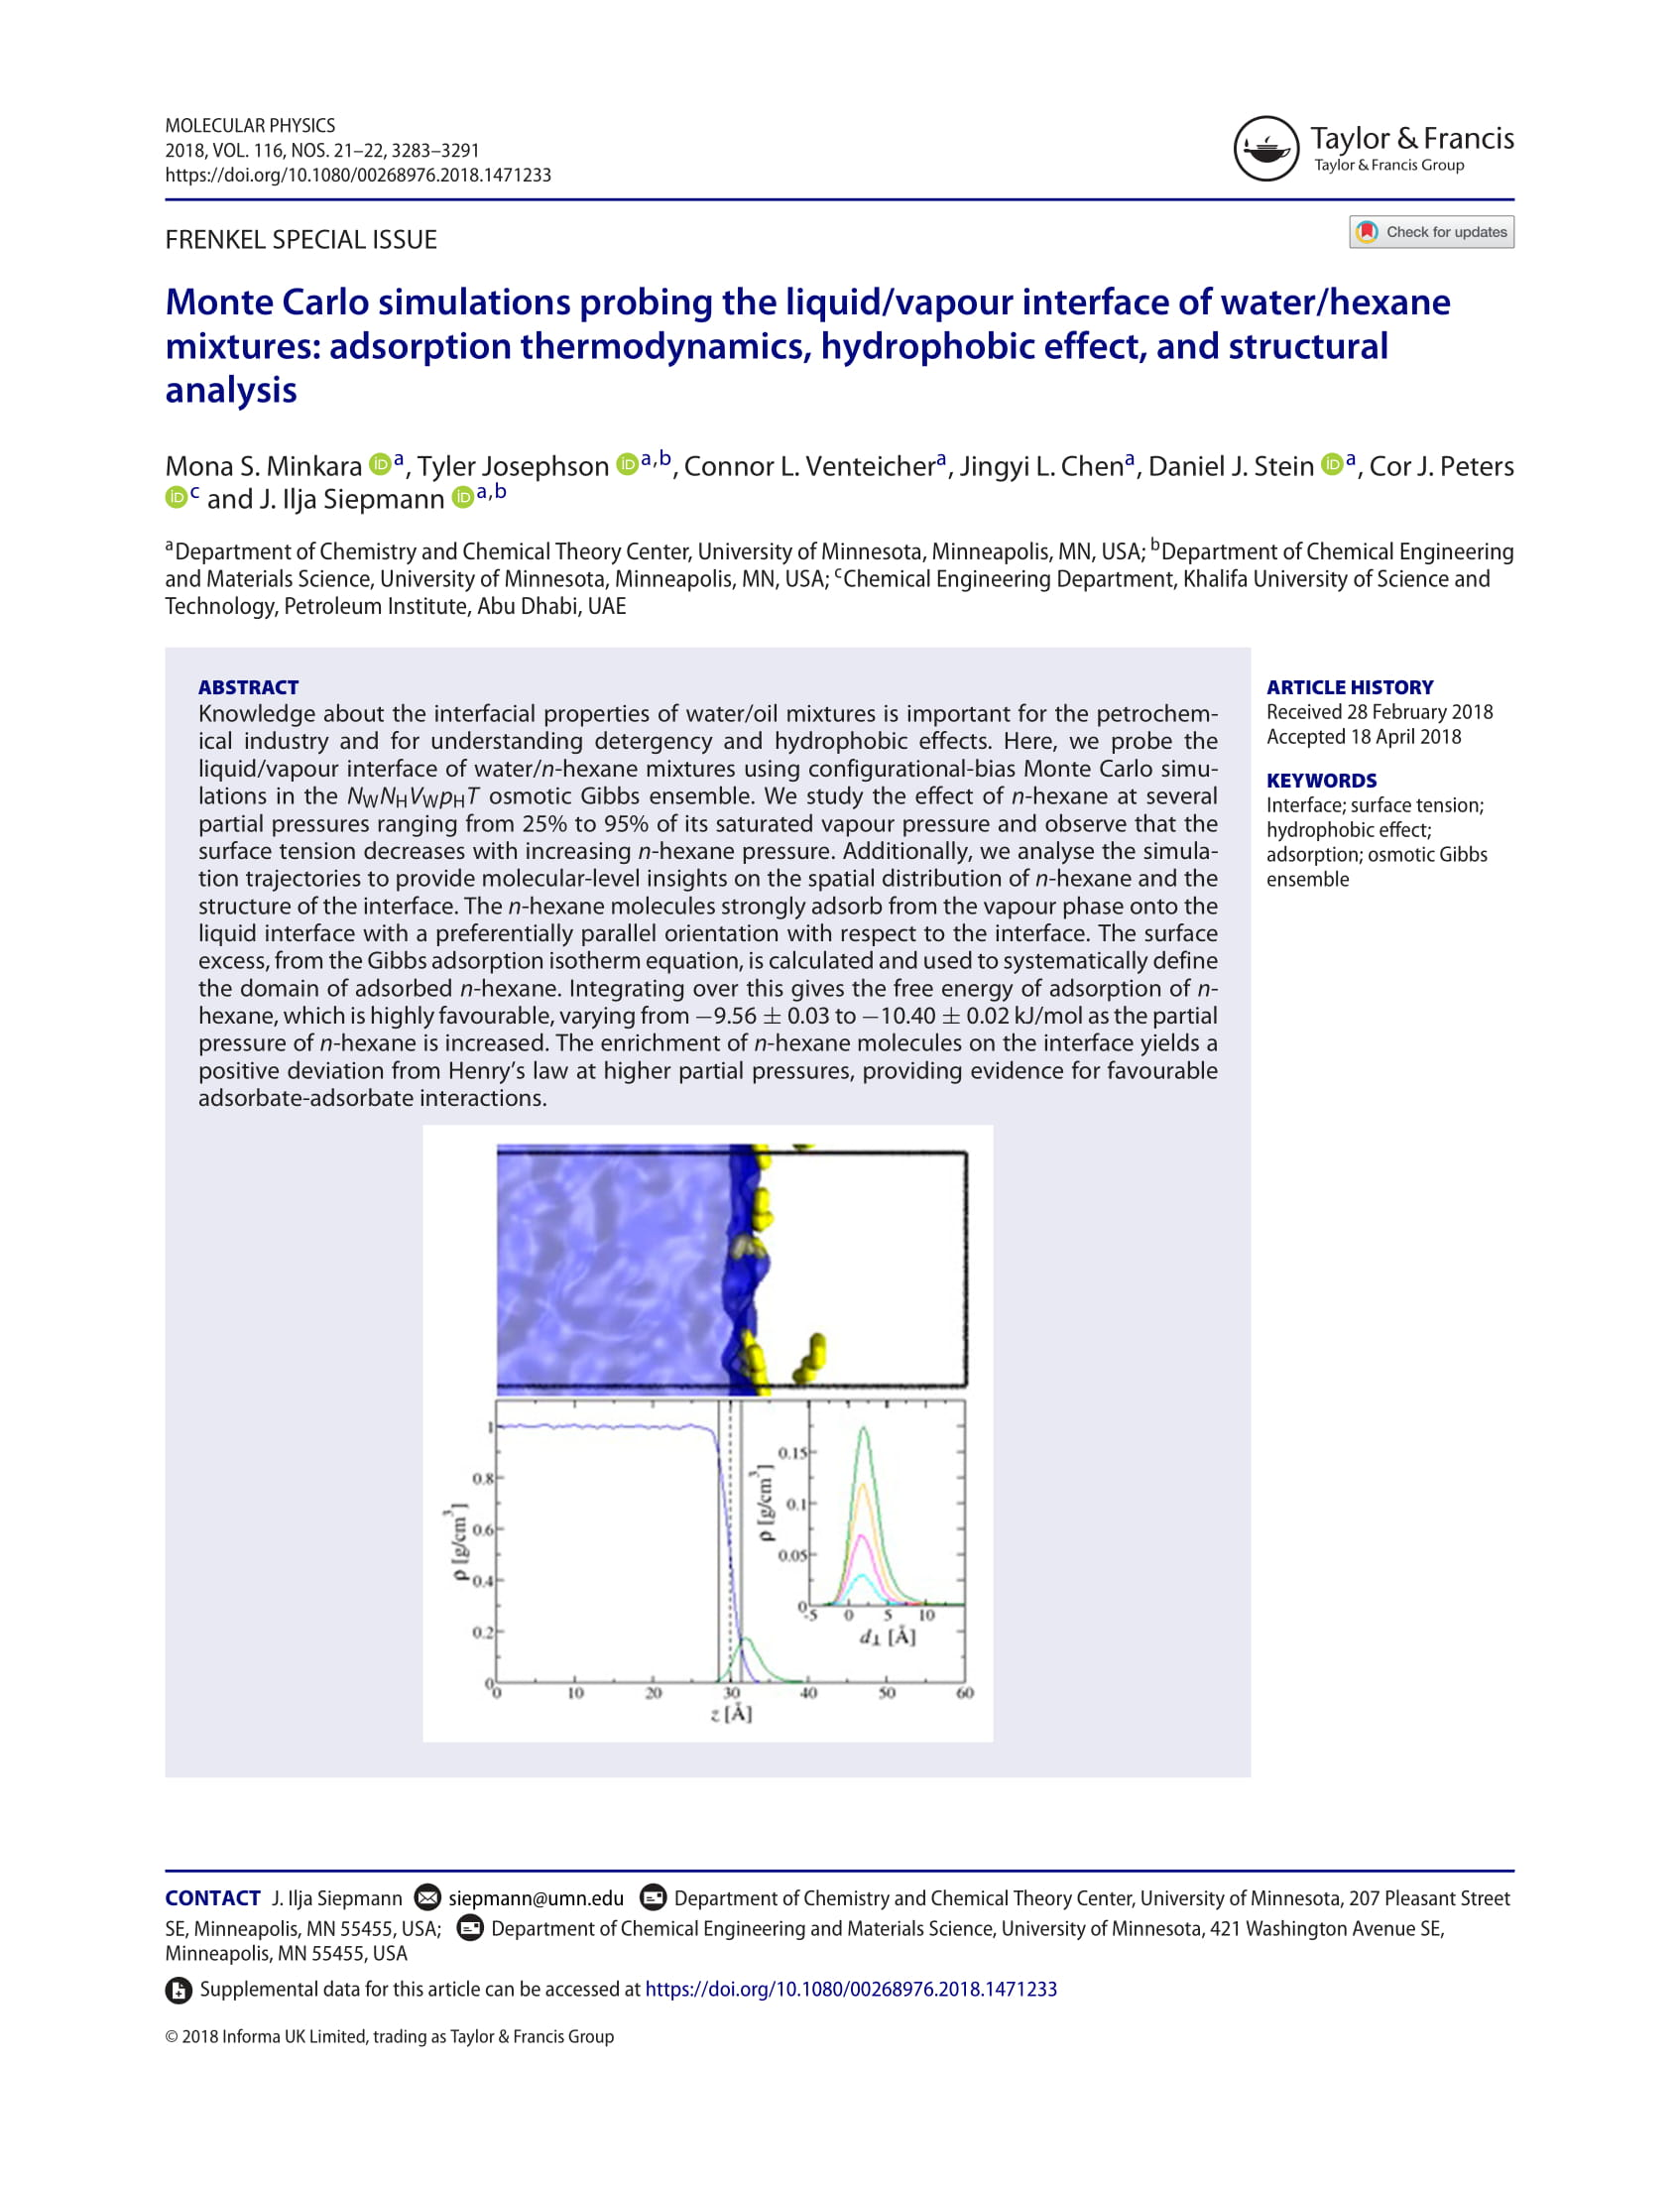 Monte Carlo Simulations Probing the Liquid/Vapour Interface of Water/Hexane Mixtures: Adsorption Thermodynamics, Hydrophobic Effect, and Structural Analysis